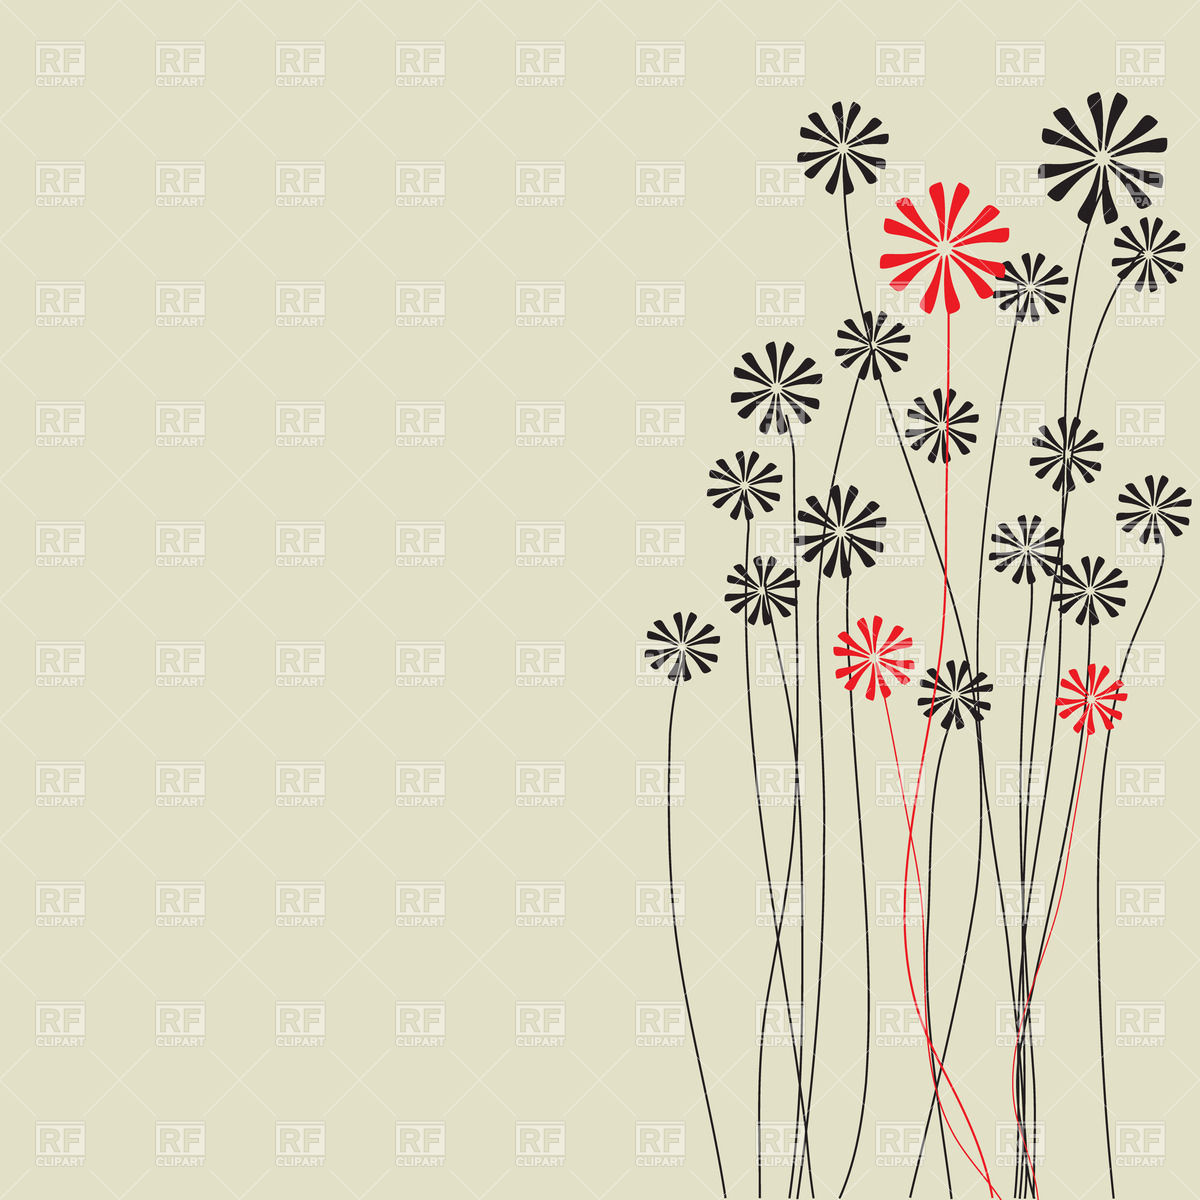 Abstract hand drawn flowers with long stems Vector Image #24185.